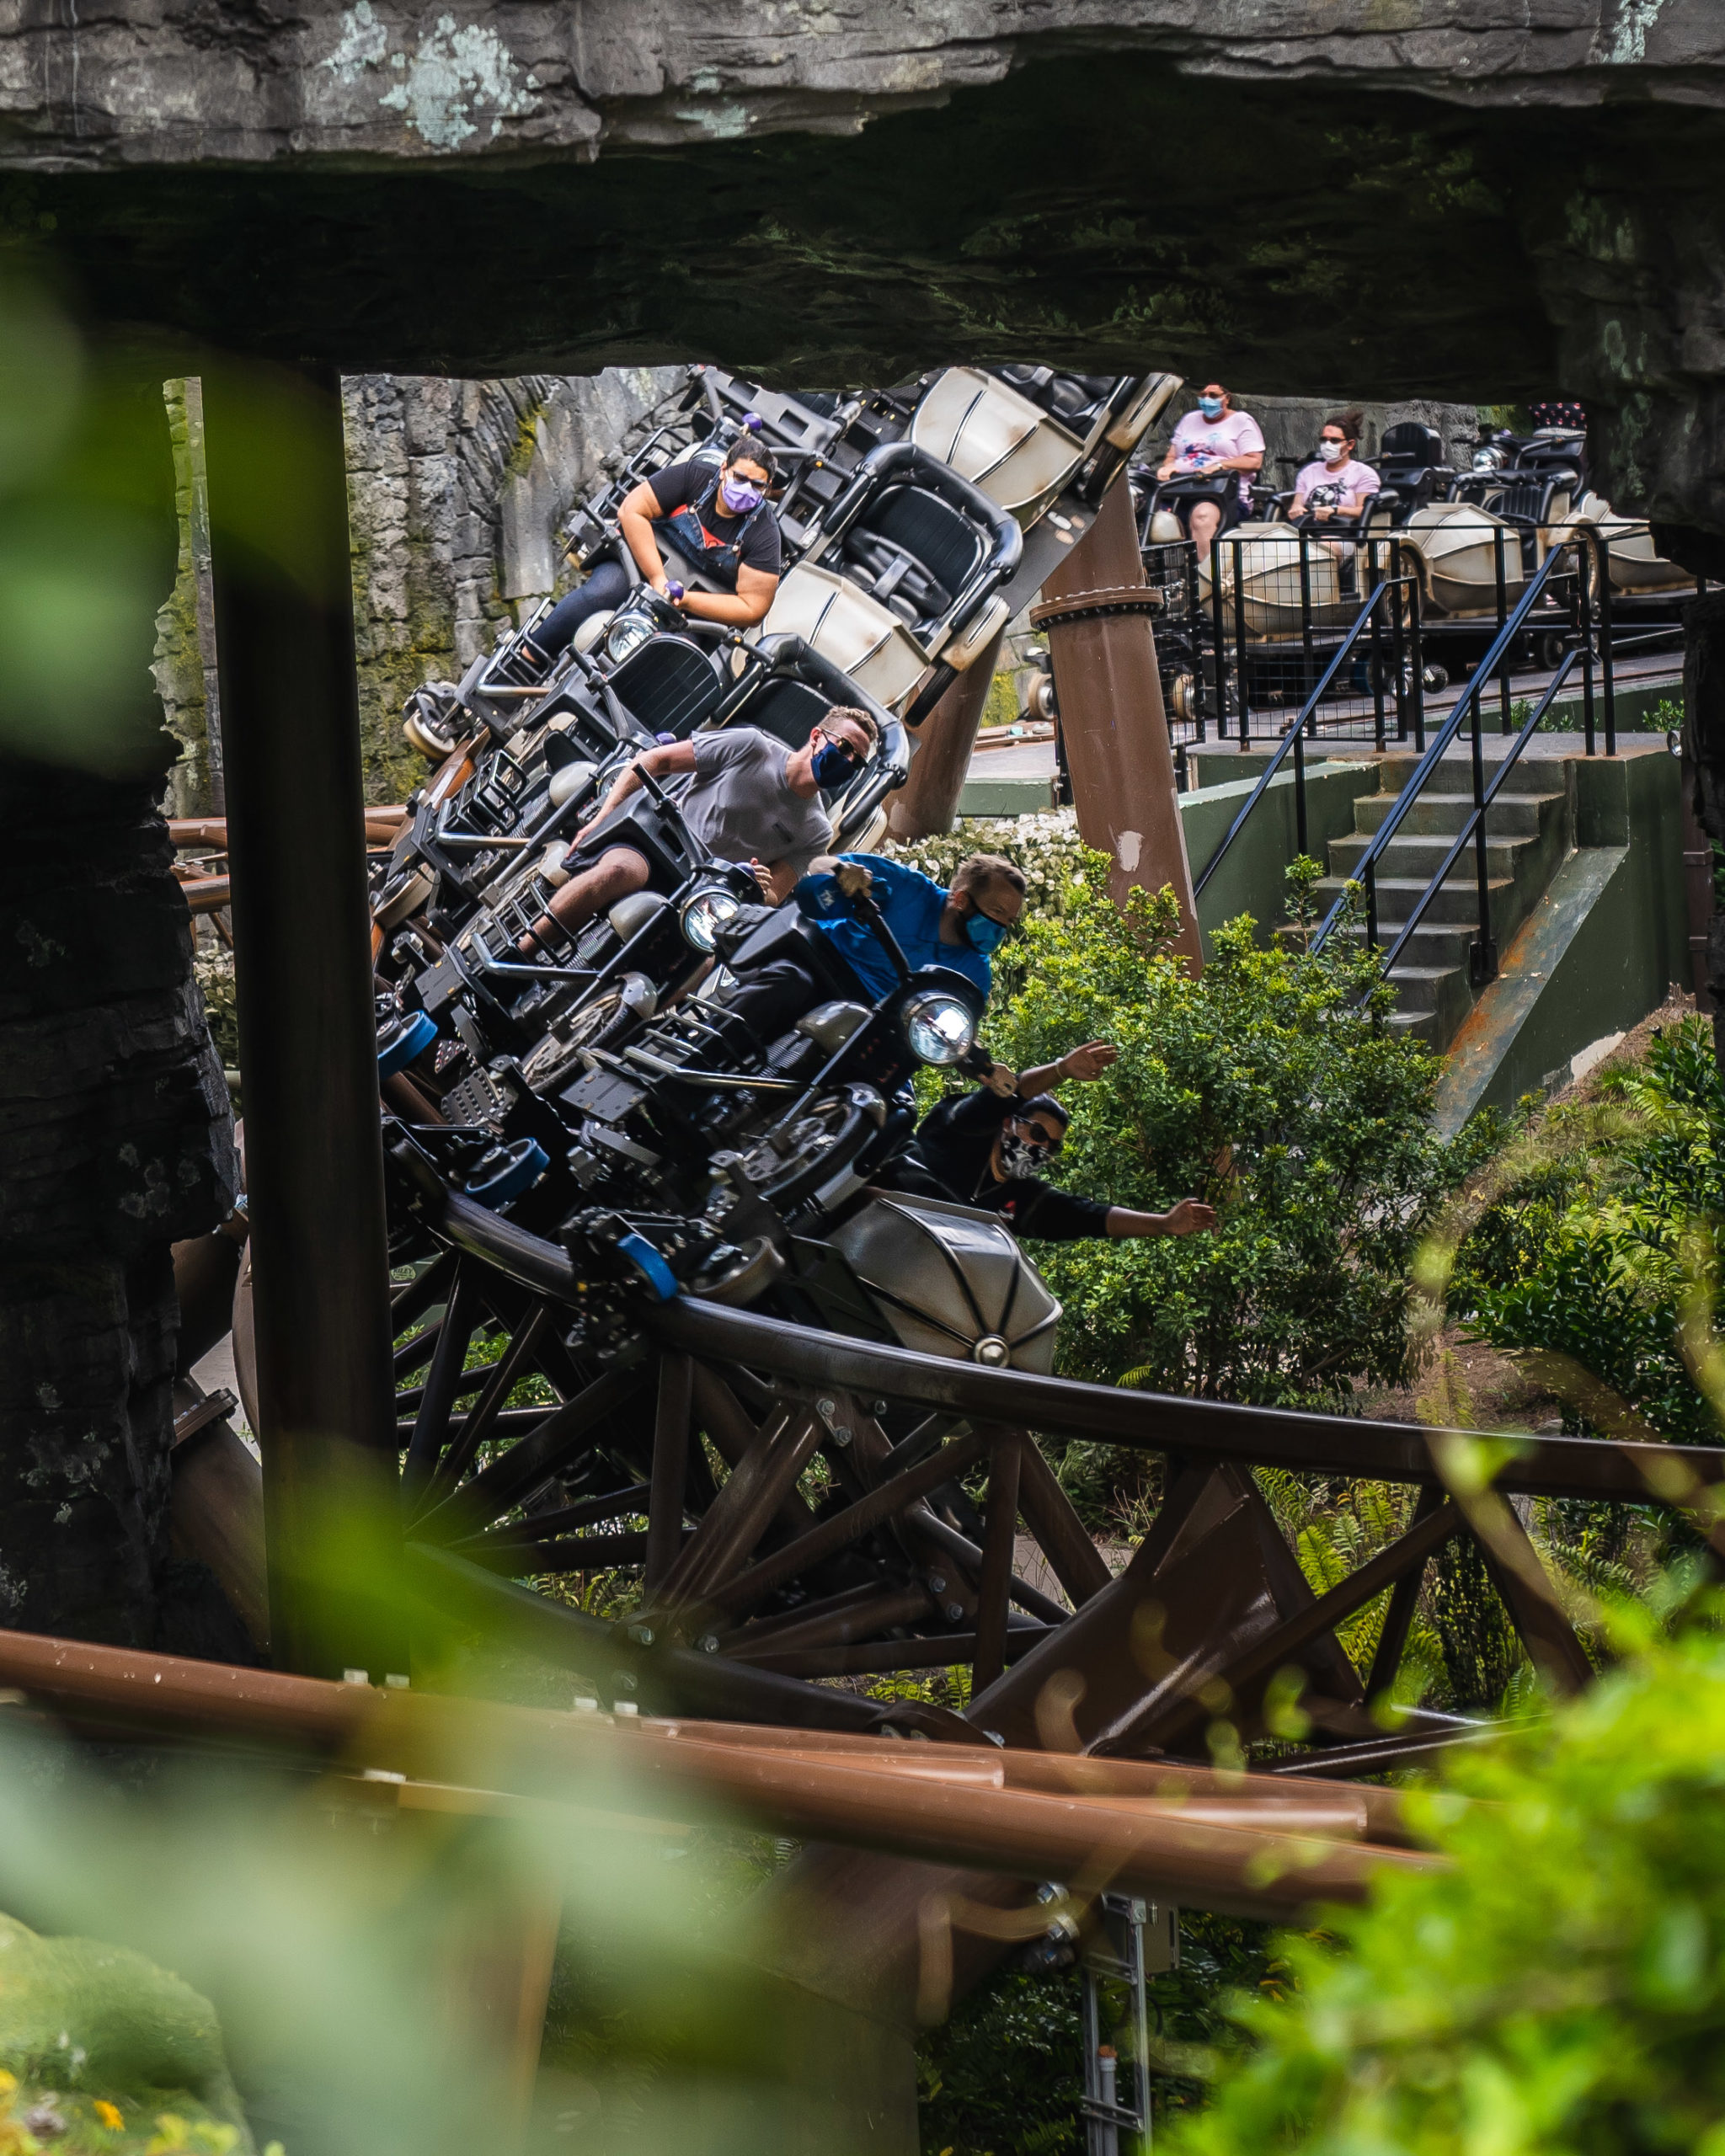 Hagrid's Magical Creatures Motorbike Adventure at Islands of Adventure